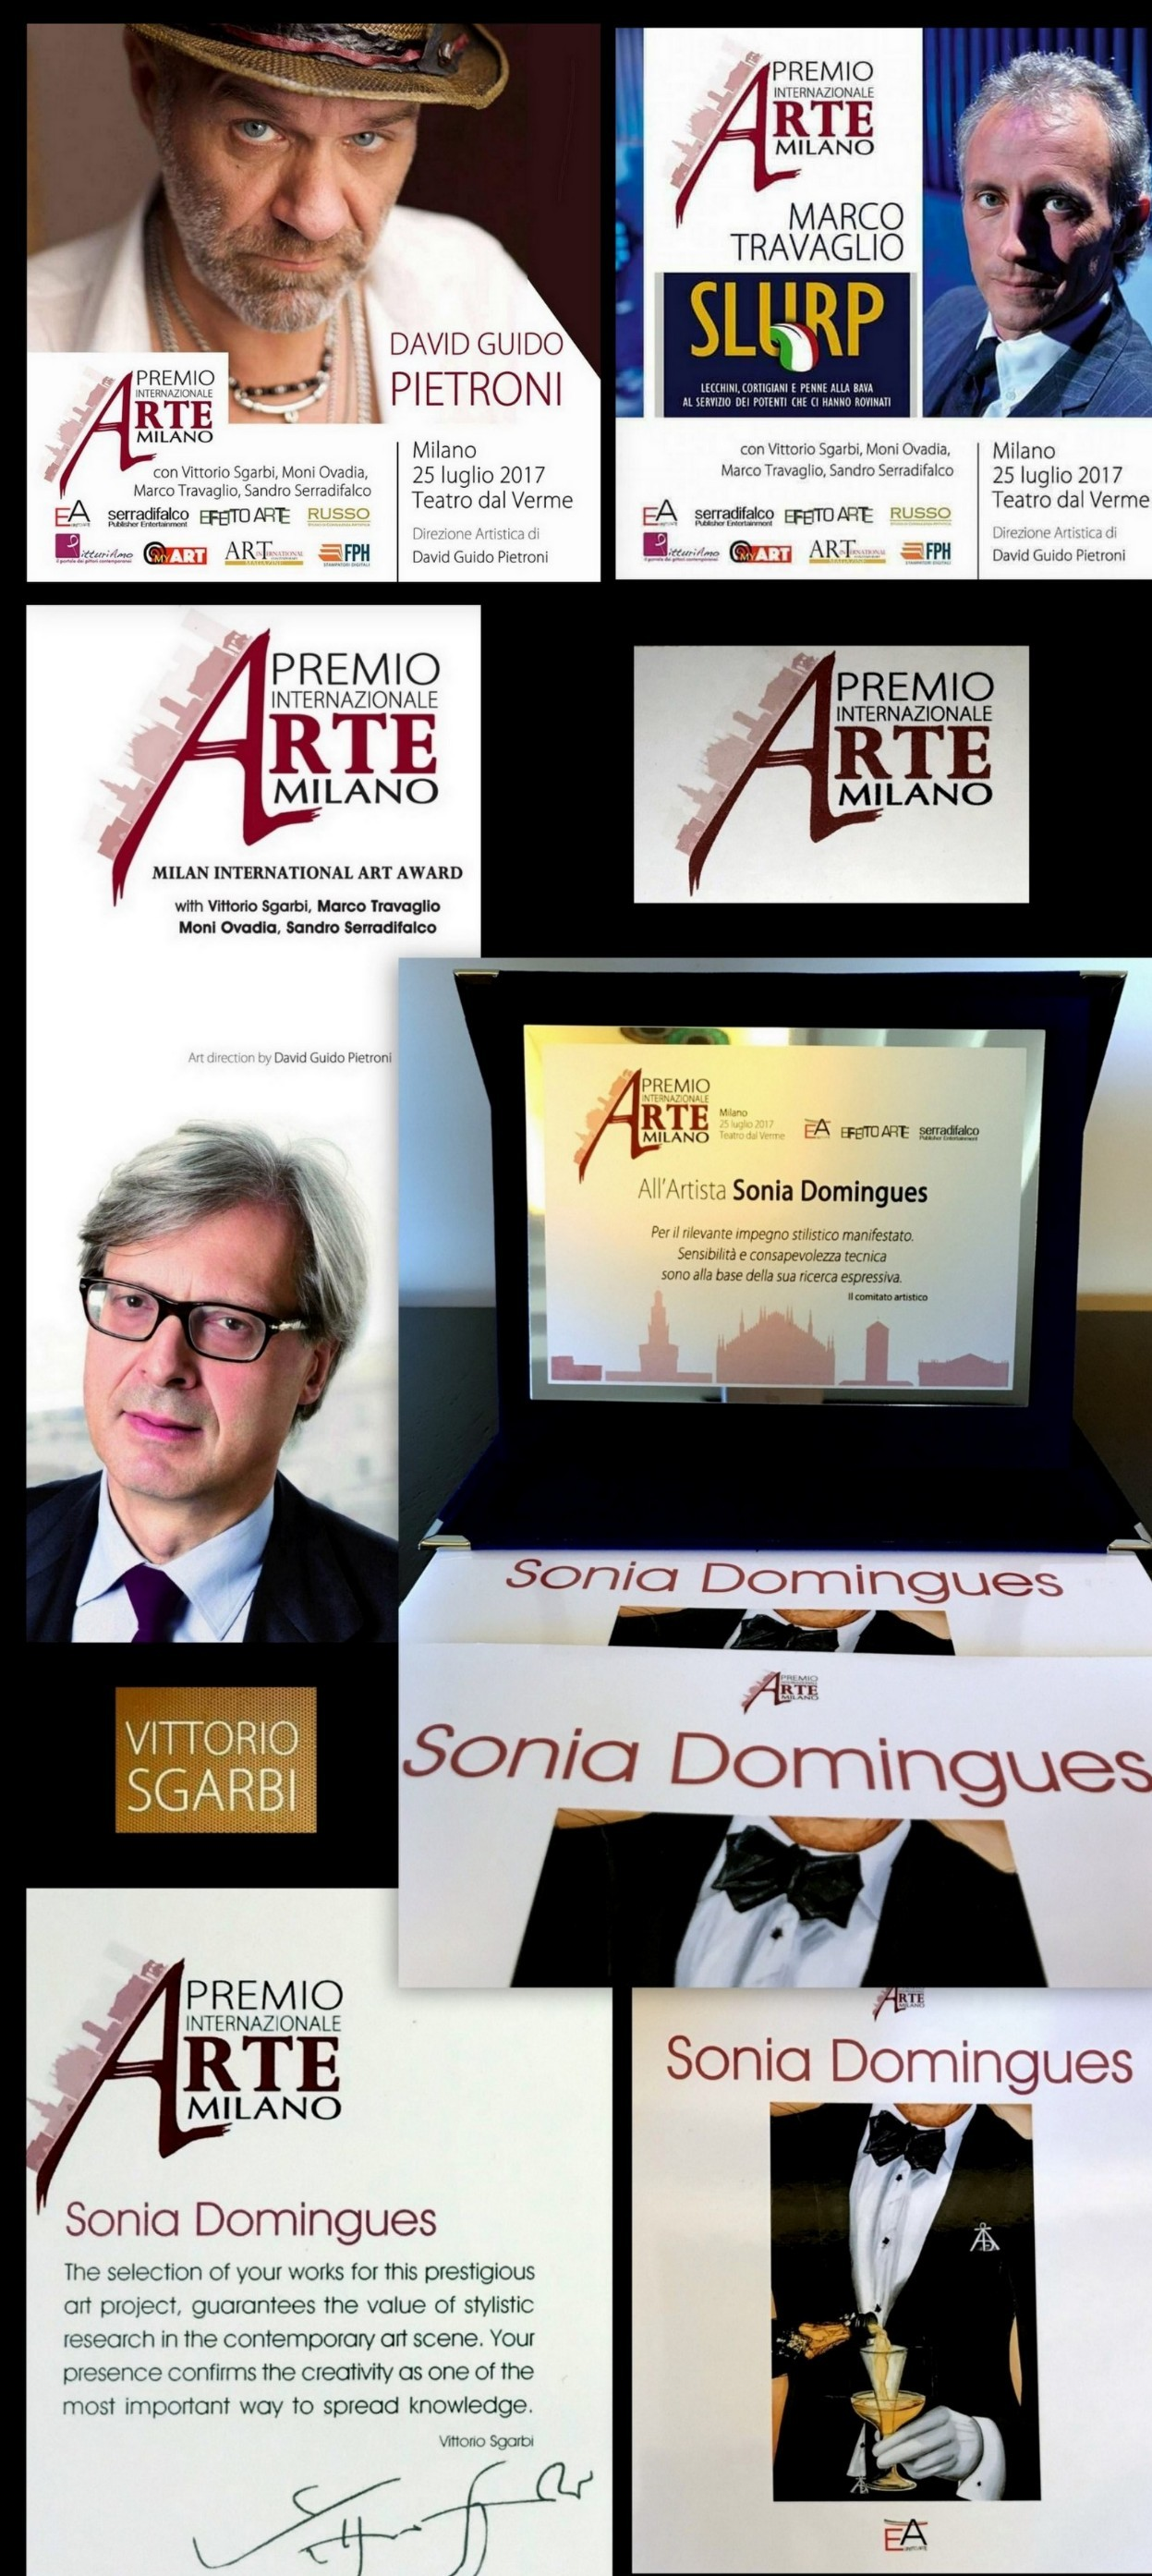 International Prize Art Milano to the Artist Sonia Domingues